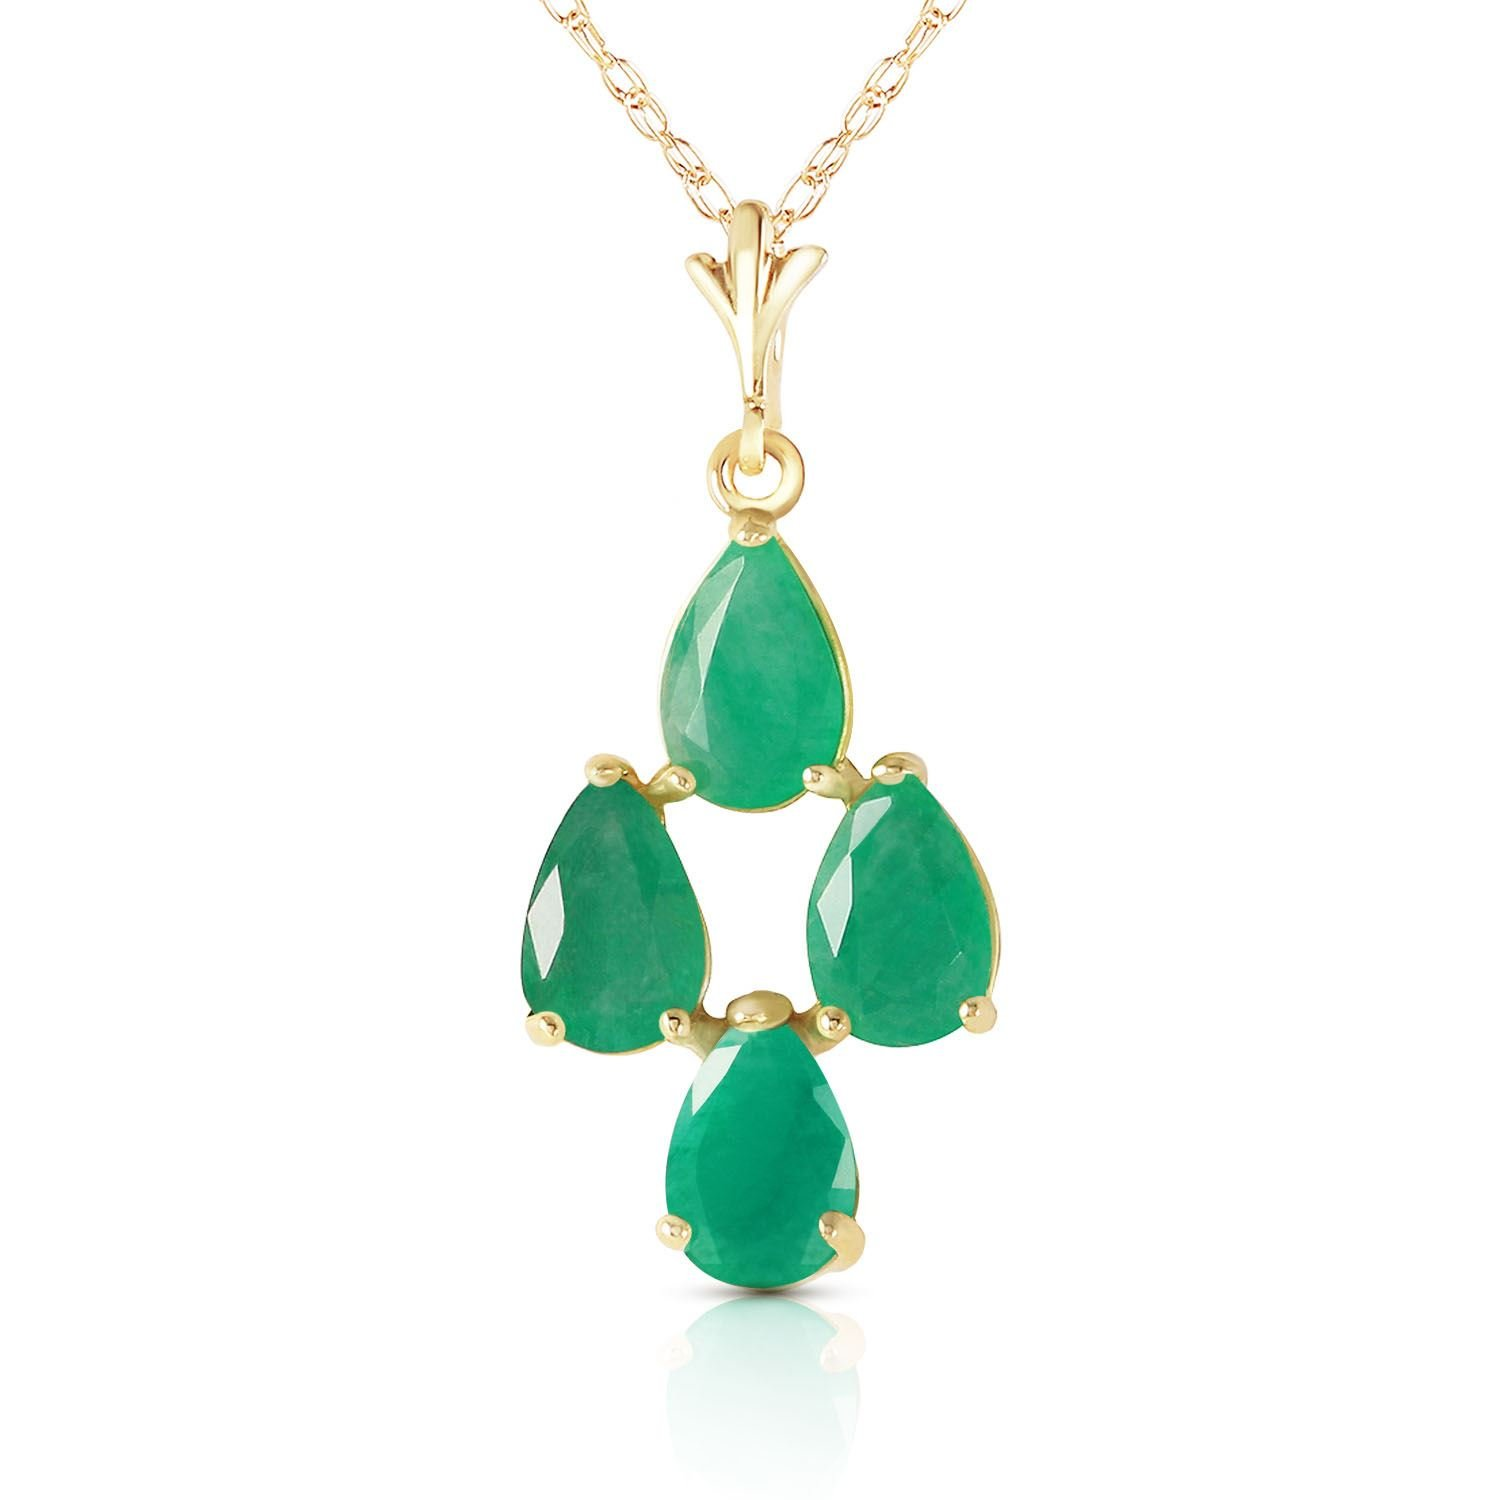 ALARRI 1.5 Carat 14K Solid Gold Love Portrait Emerald Necklace with 18 Inch Chain Length